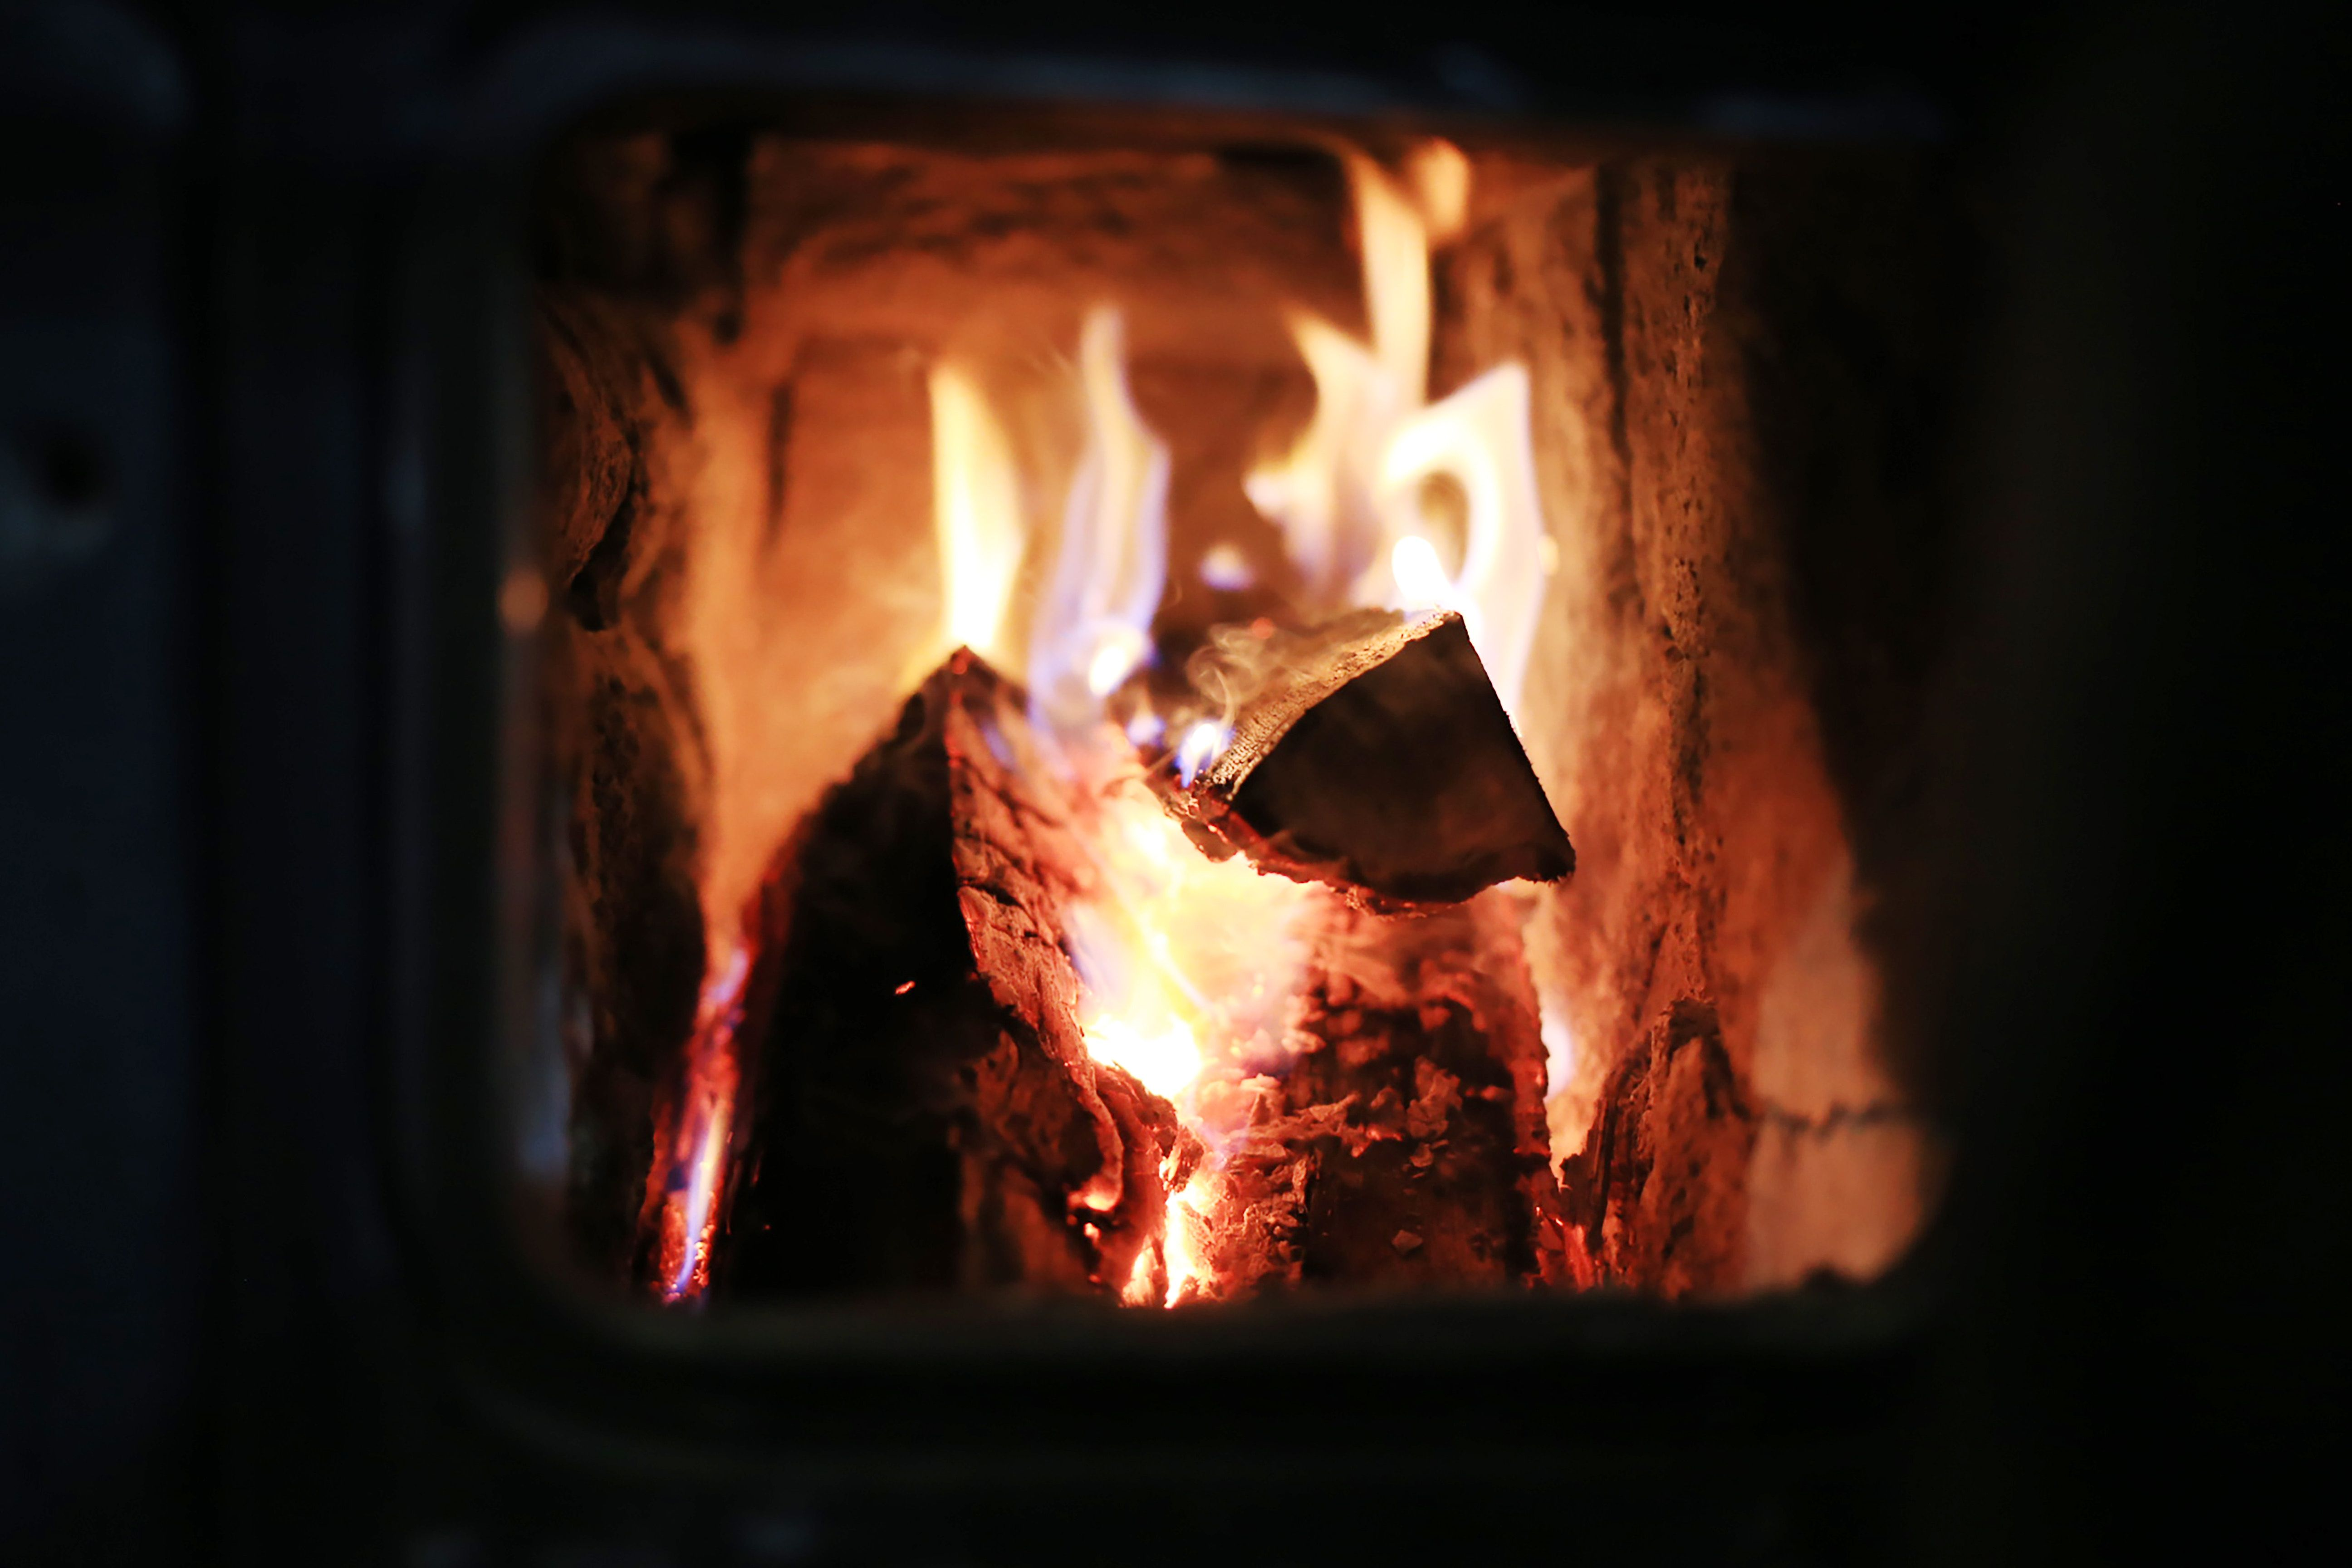 A winter fire burning in the fireplace